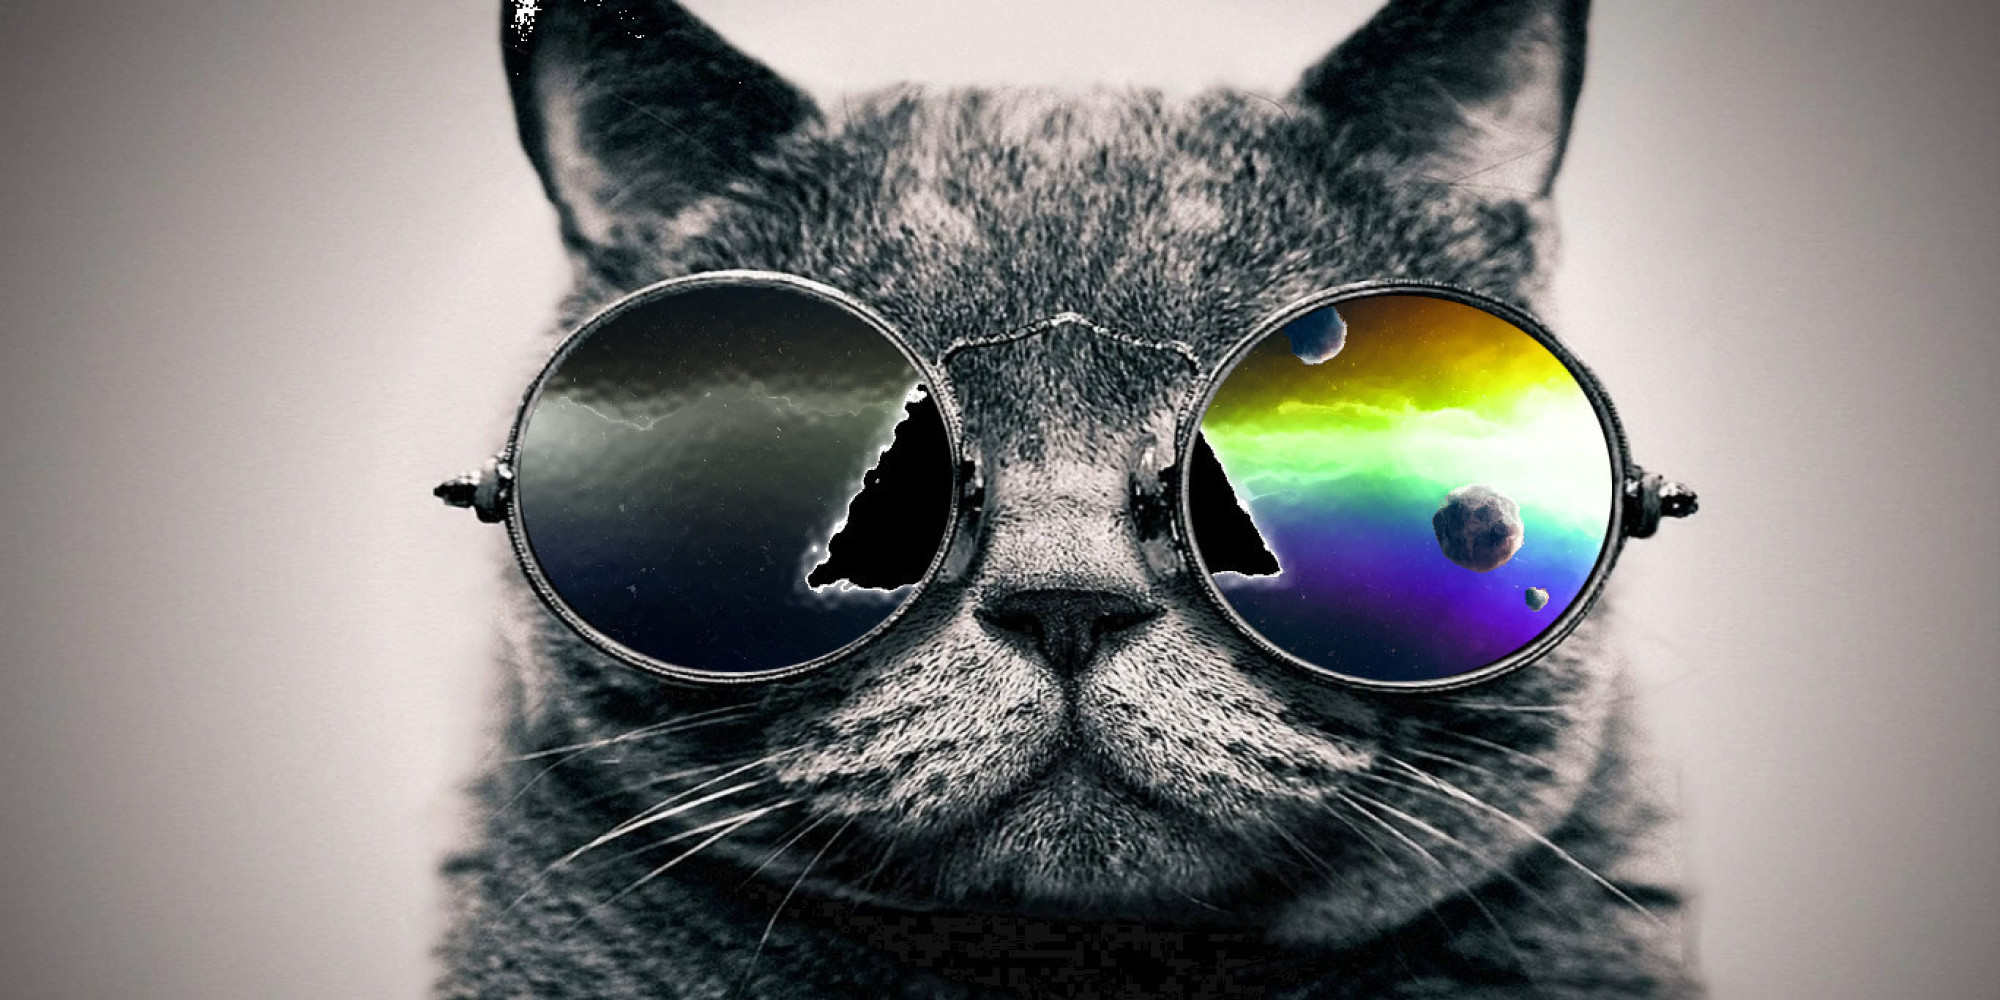 Cool Pictures of a Cat in Sunglasses